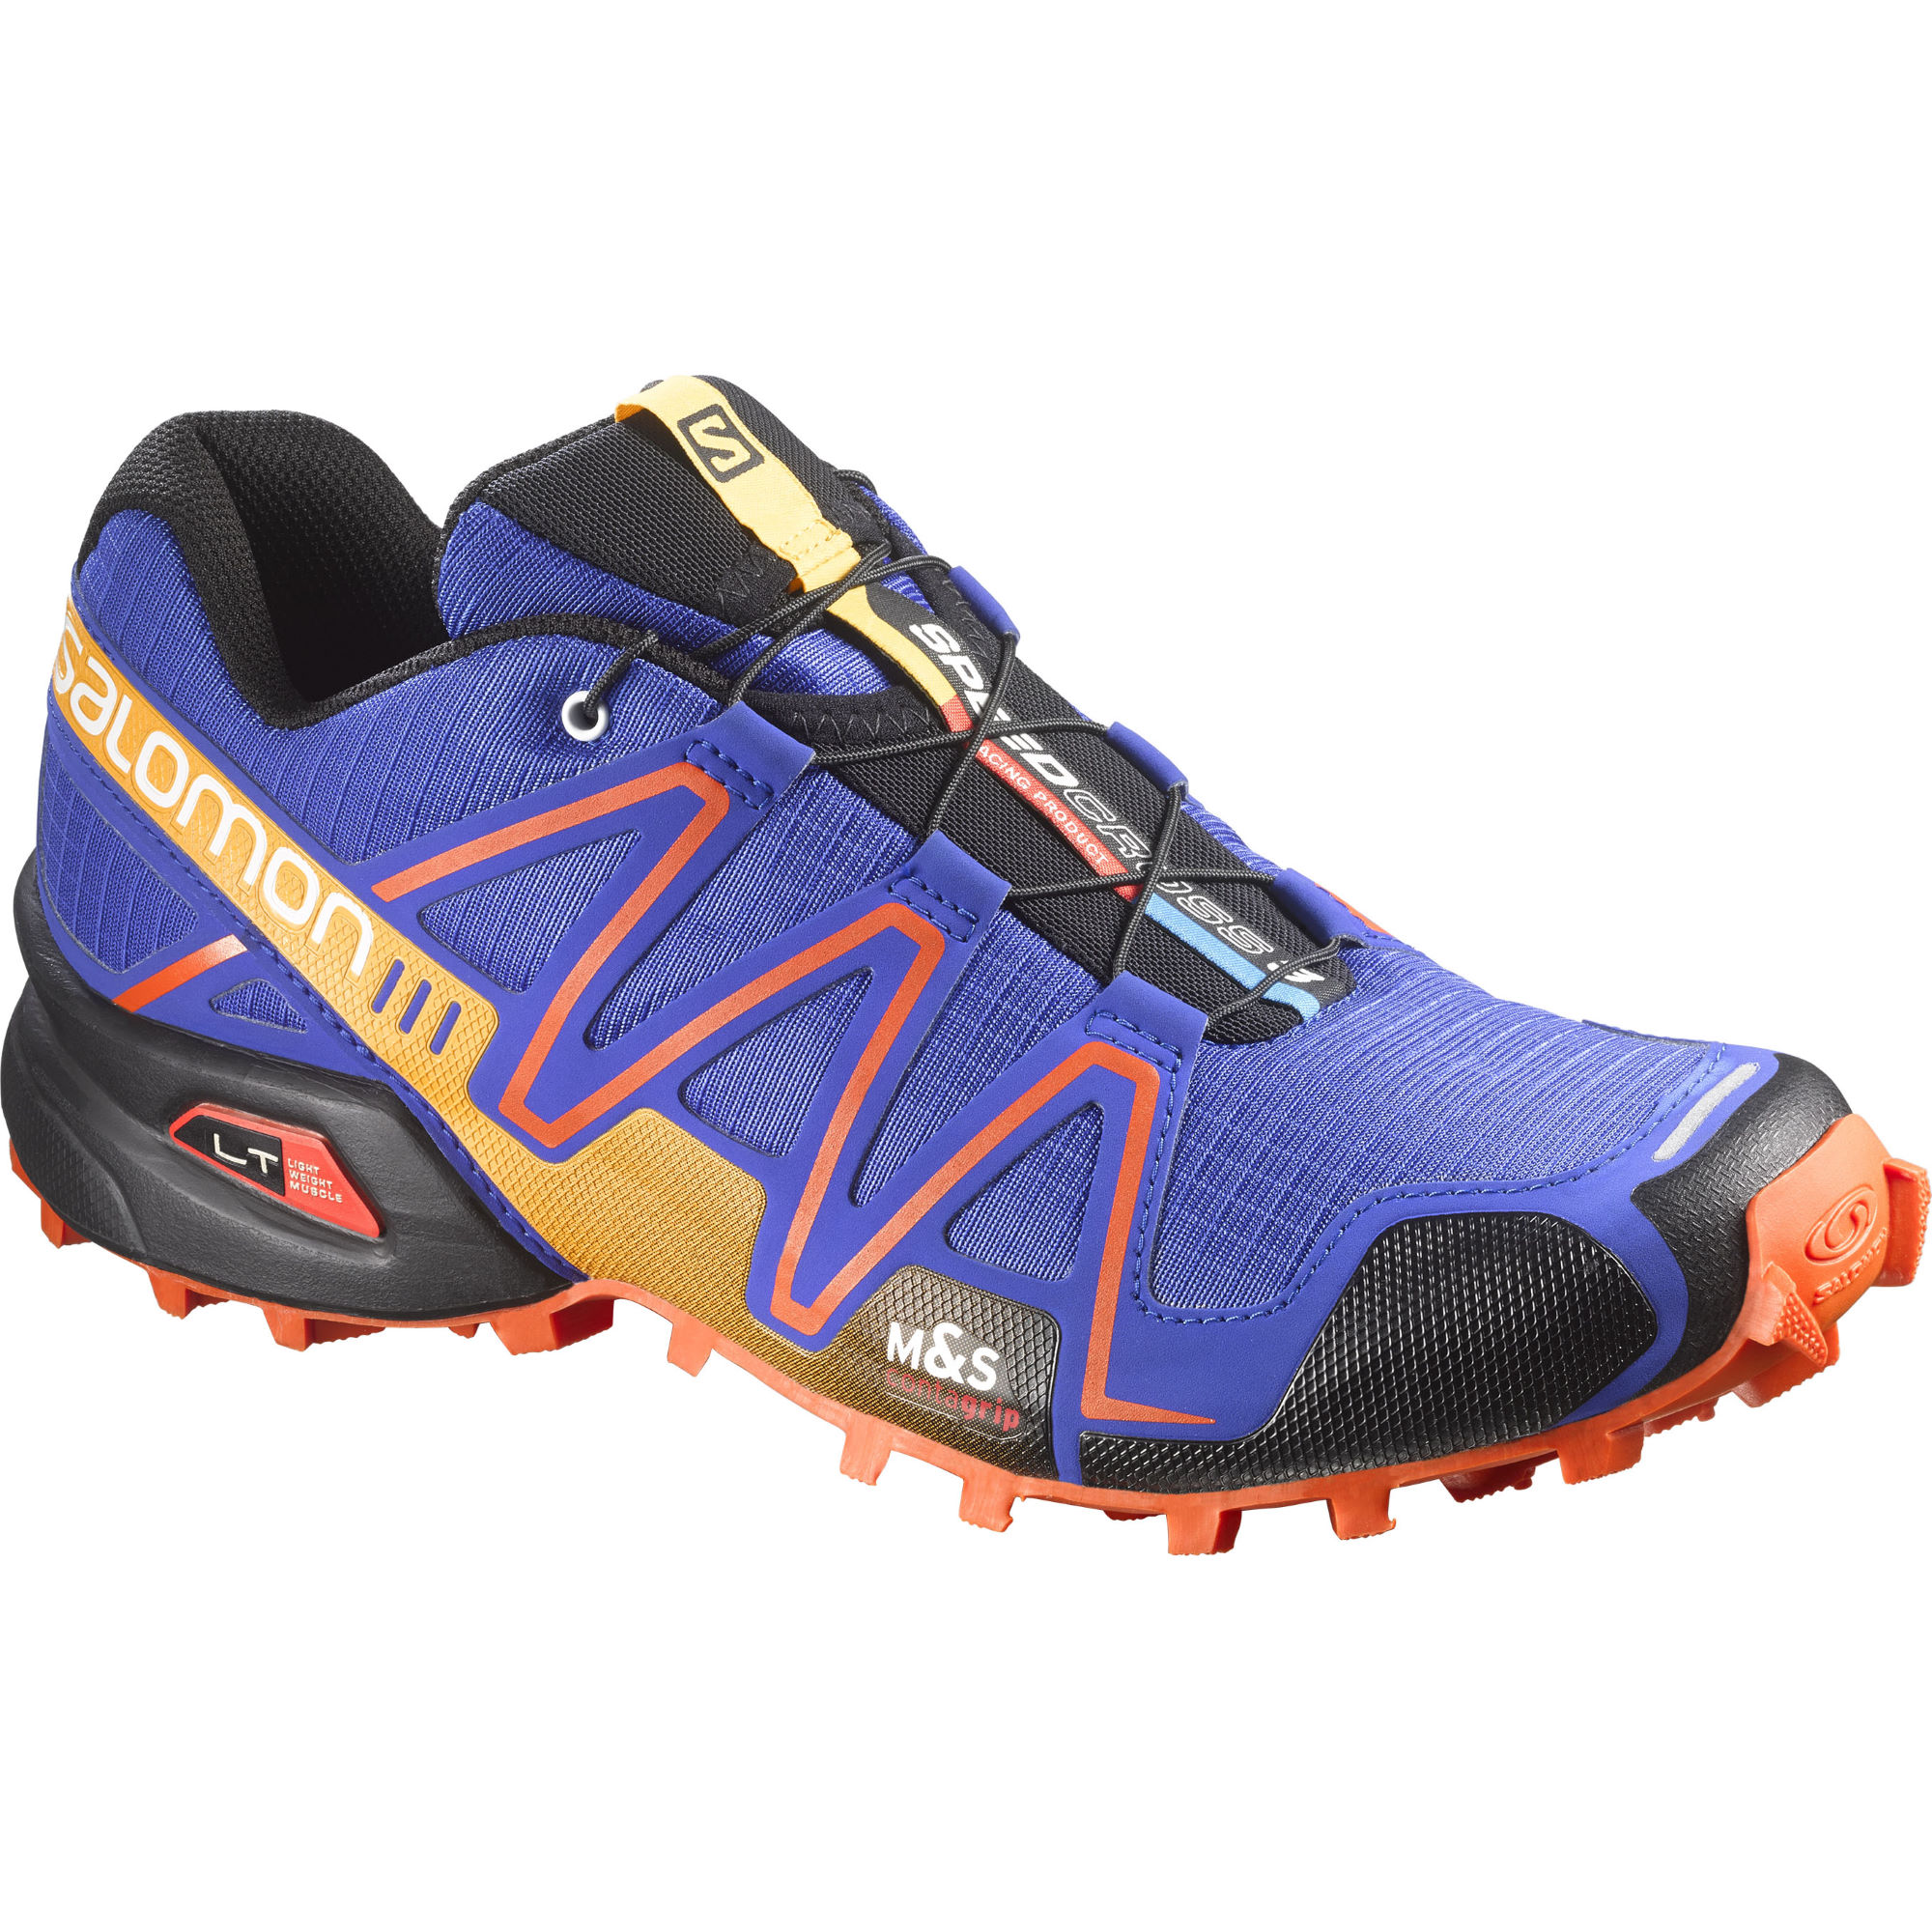 wiggle salomon speedcross 3 cobalt blue shoes aw15 offroad running shoes. Black Bedroom Furniture Sets. Home Design Ideas